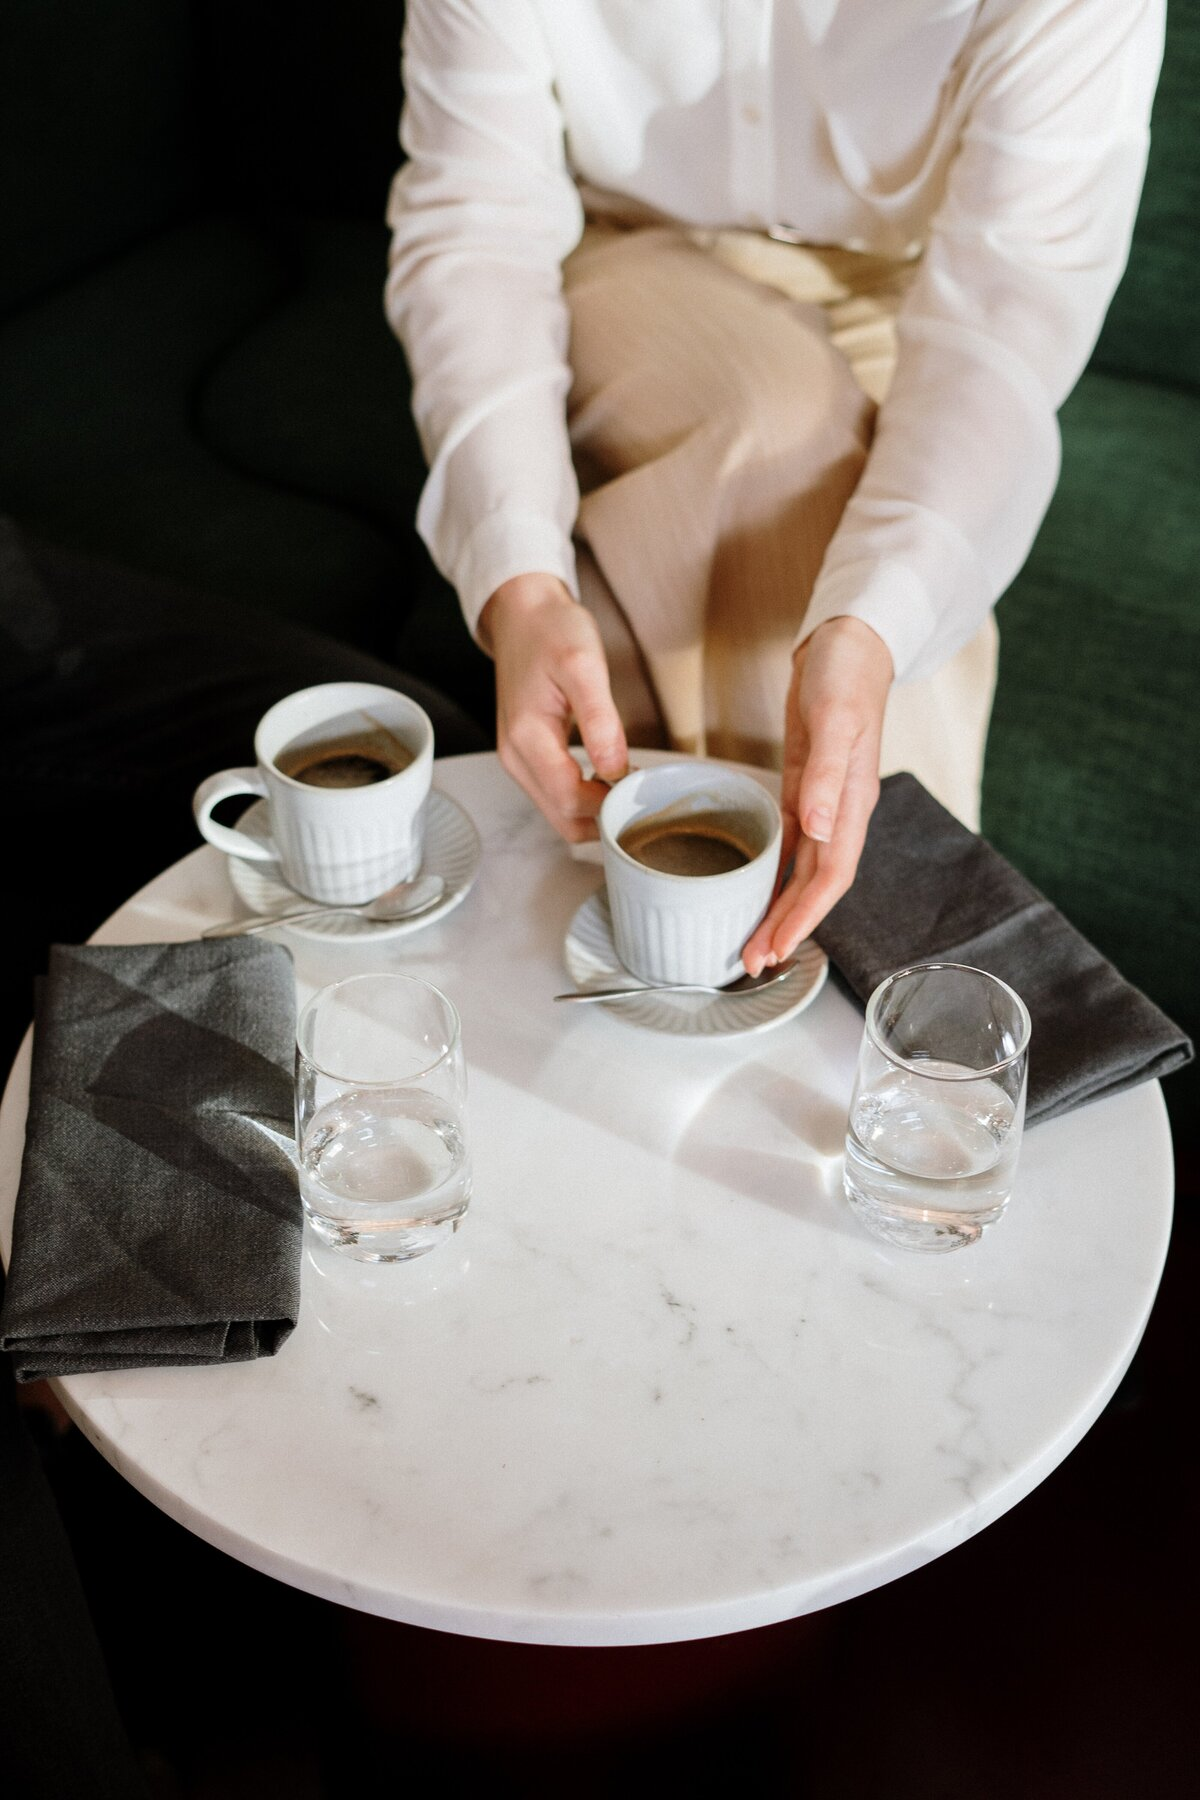 person-holding-white-ceramic-cup-on-white-table-4255416